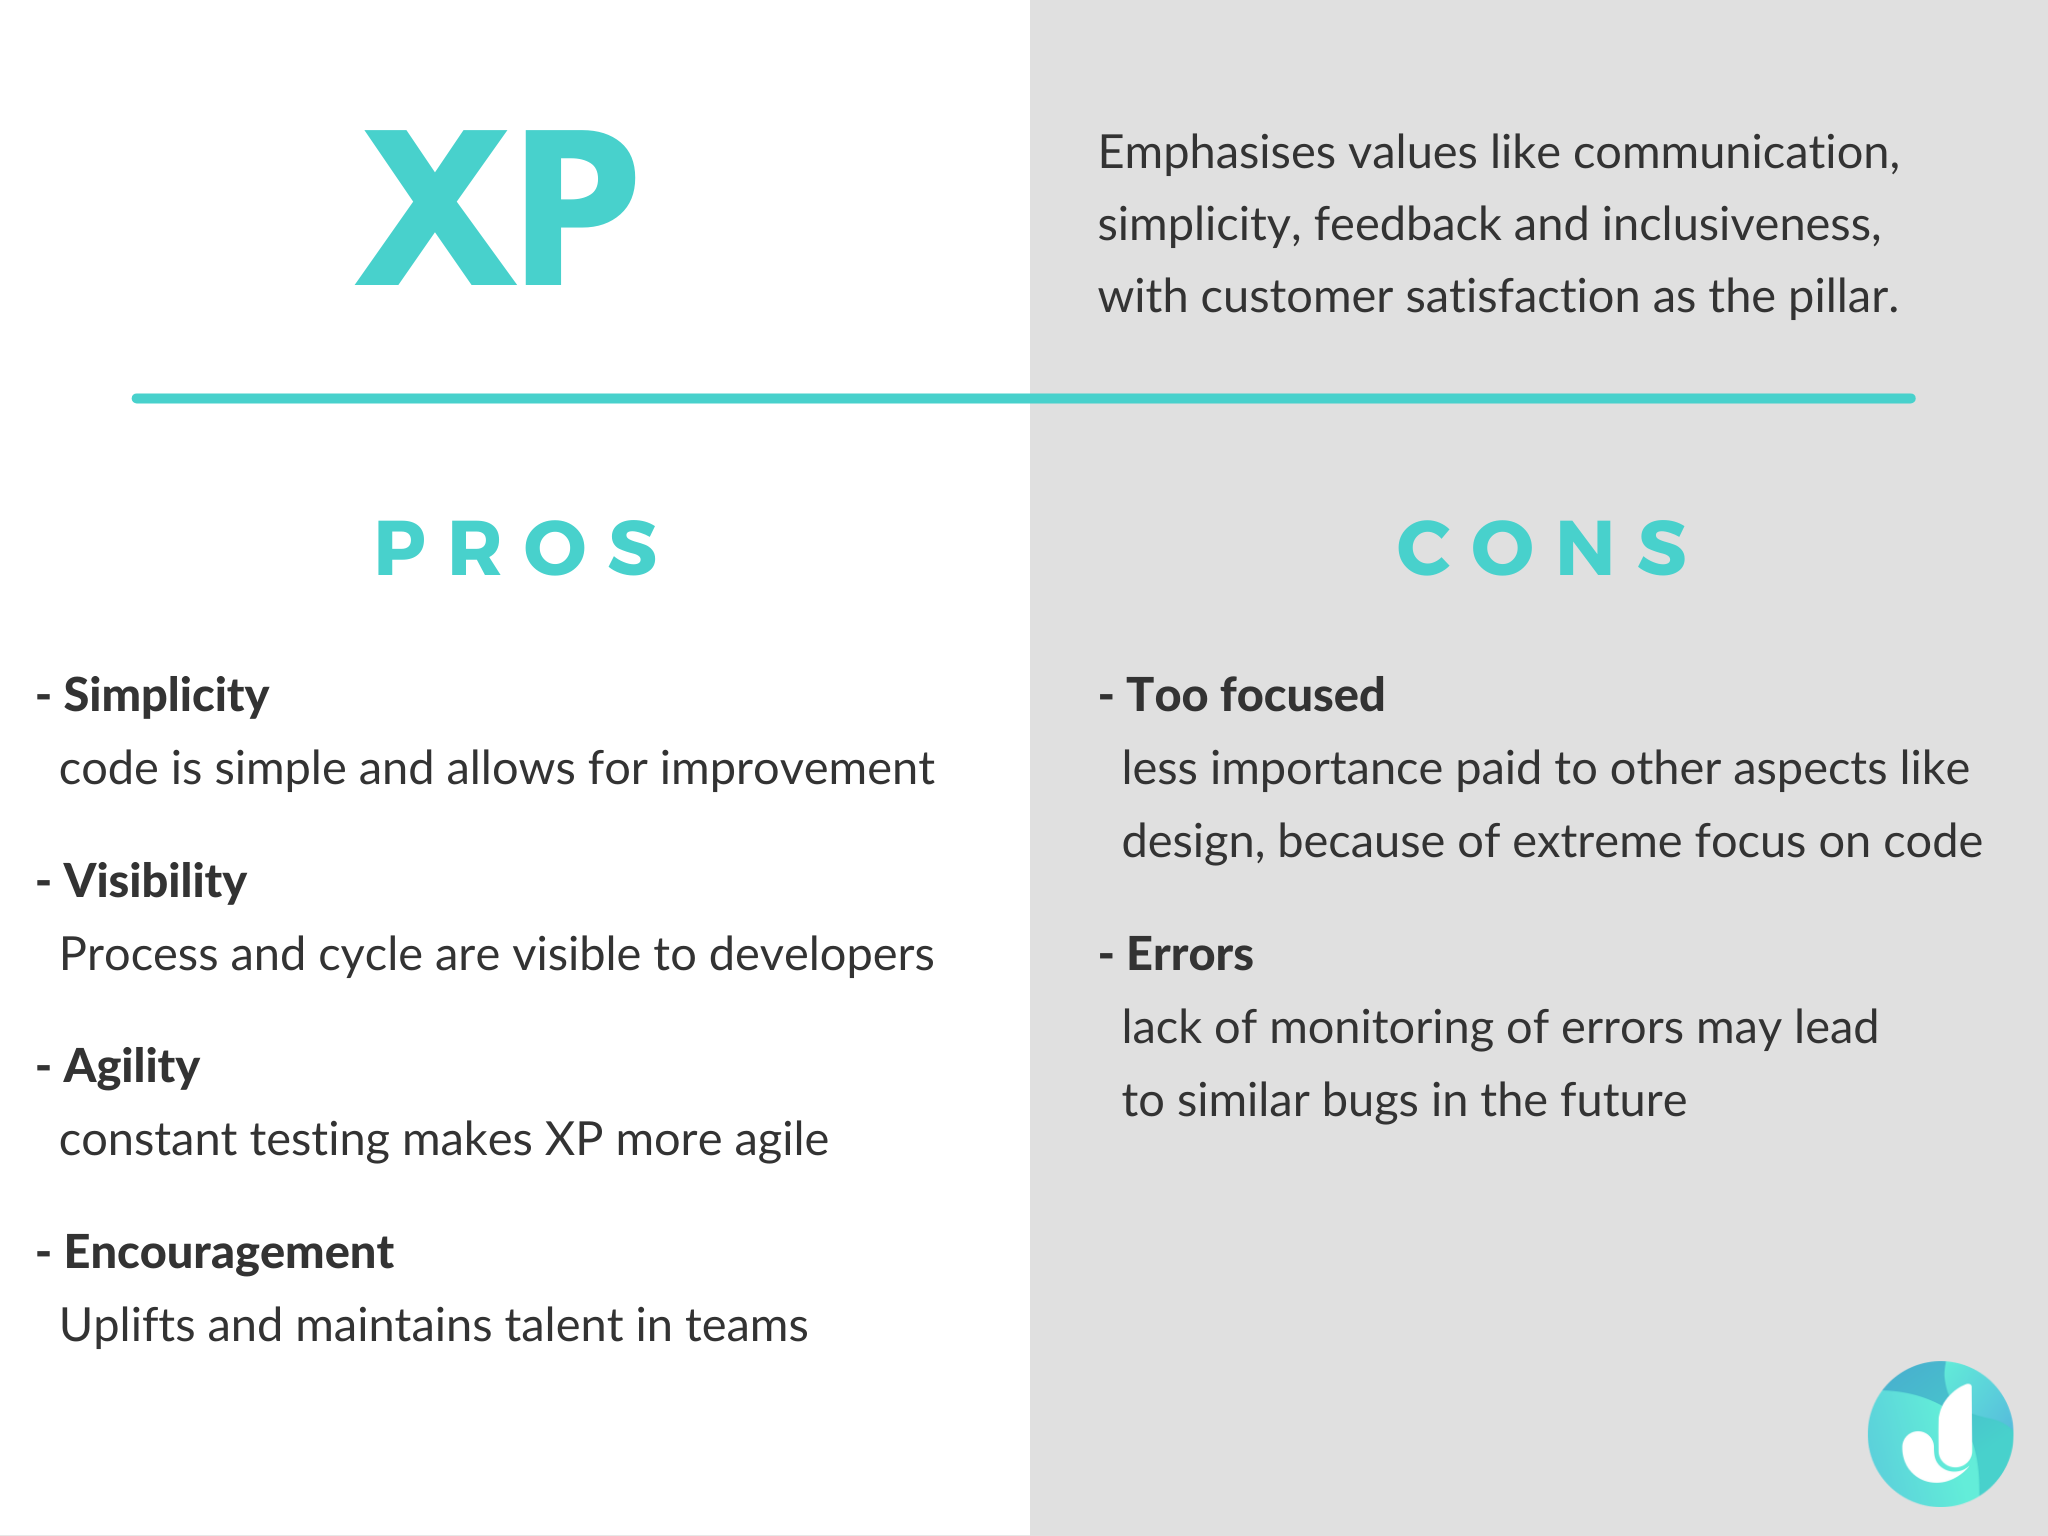 The pros and cons of XP Agile Methodology